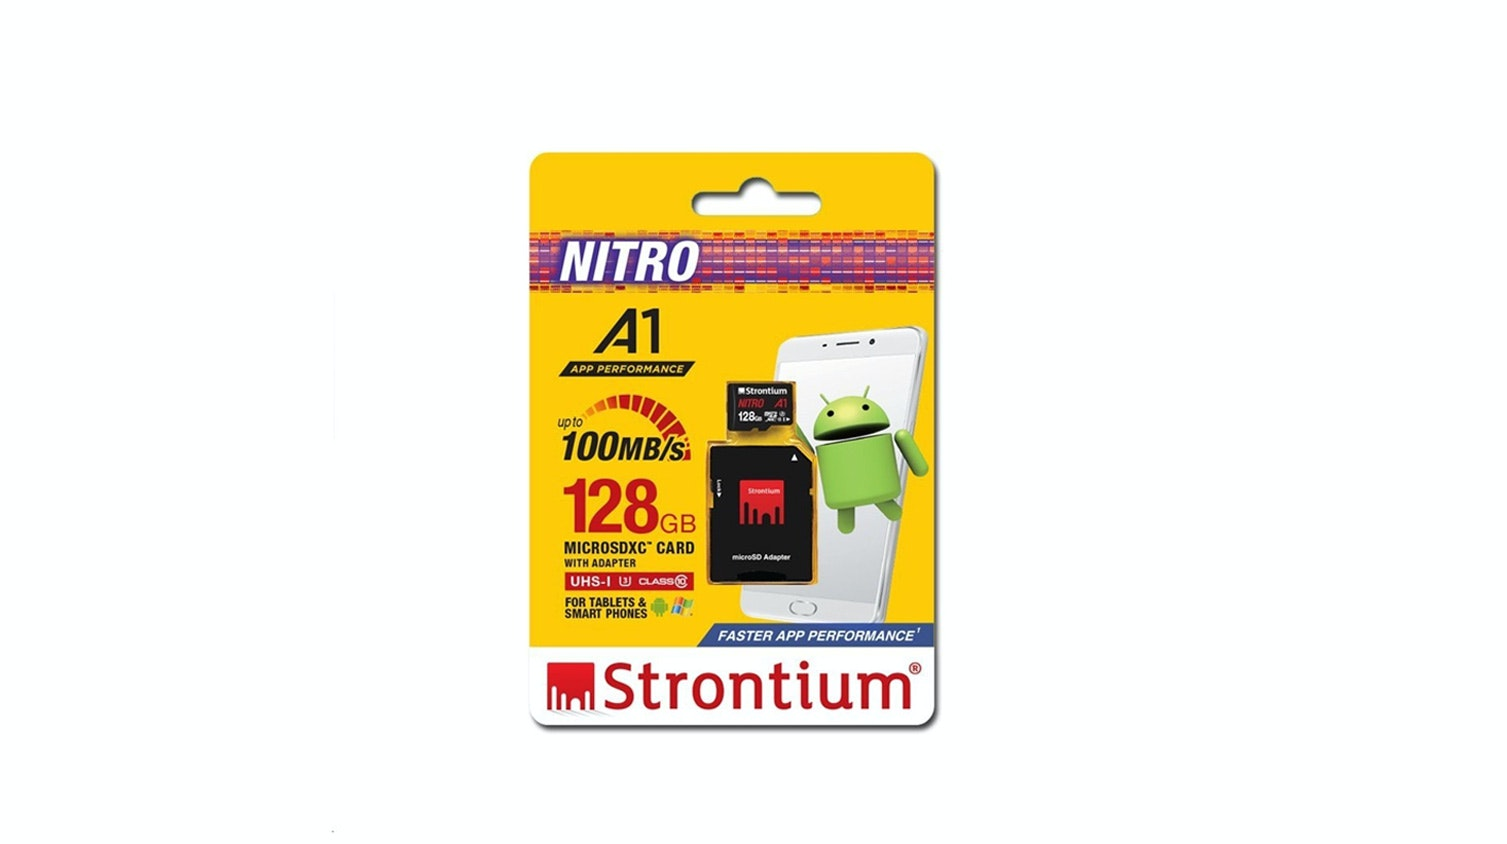 Strontium Nitro A1 128GB Micro SD Card with Adapter Packaging